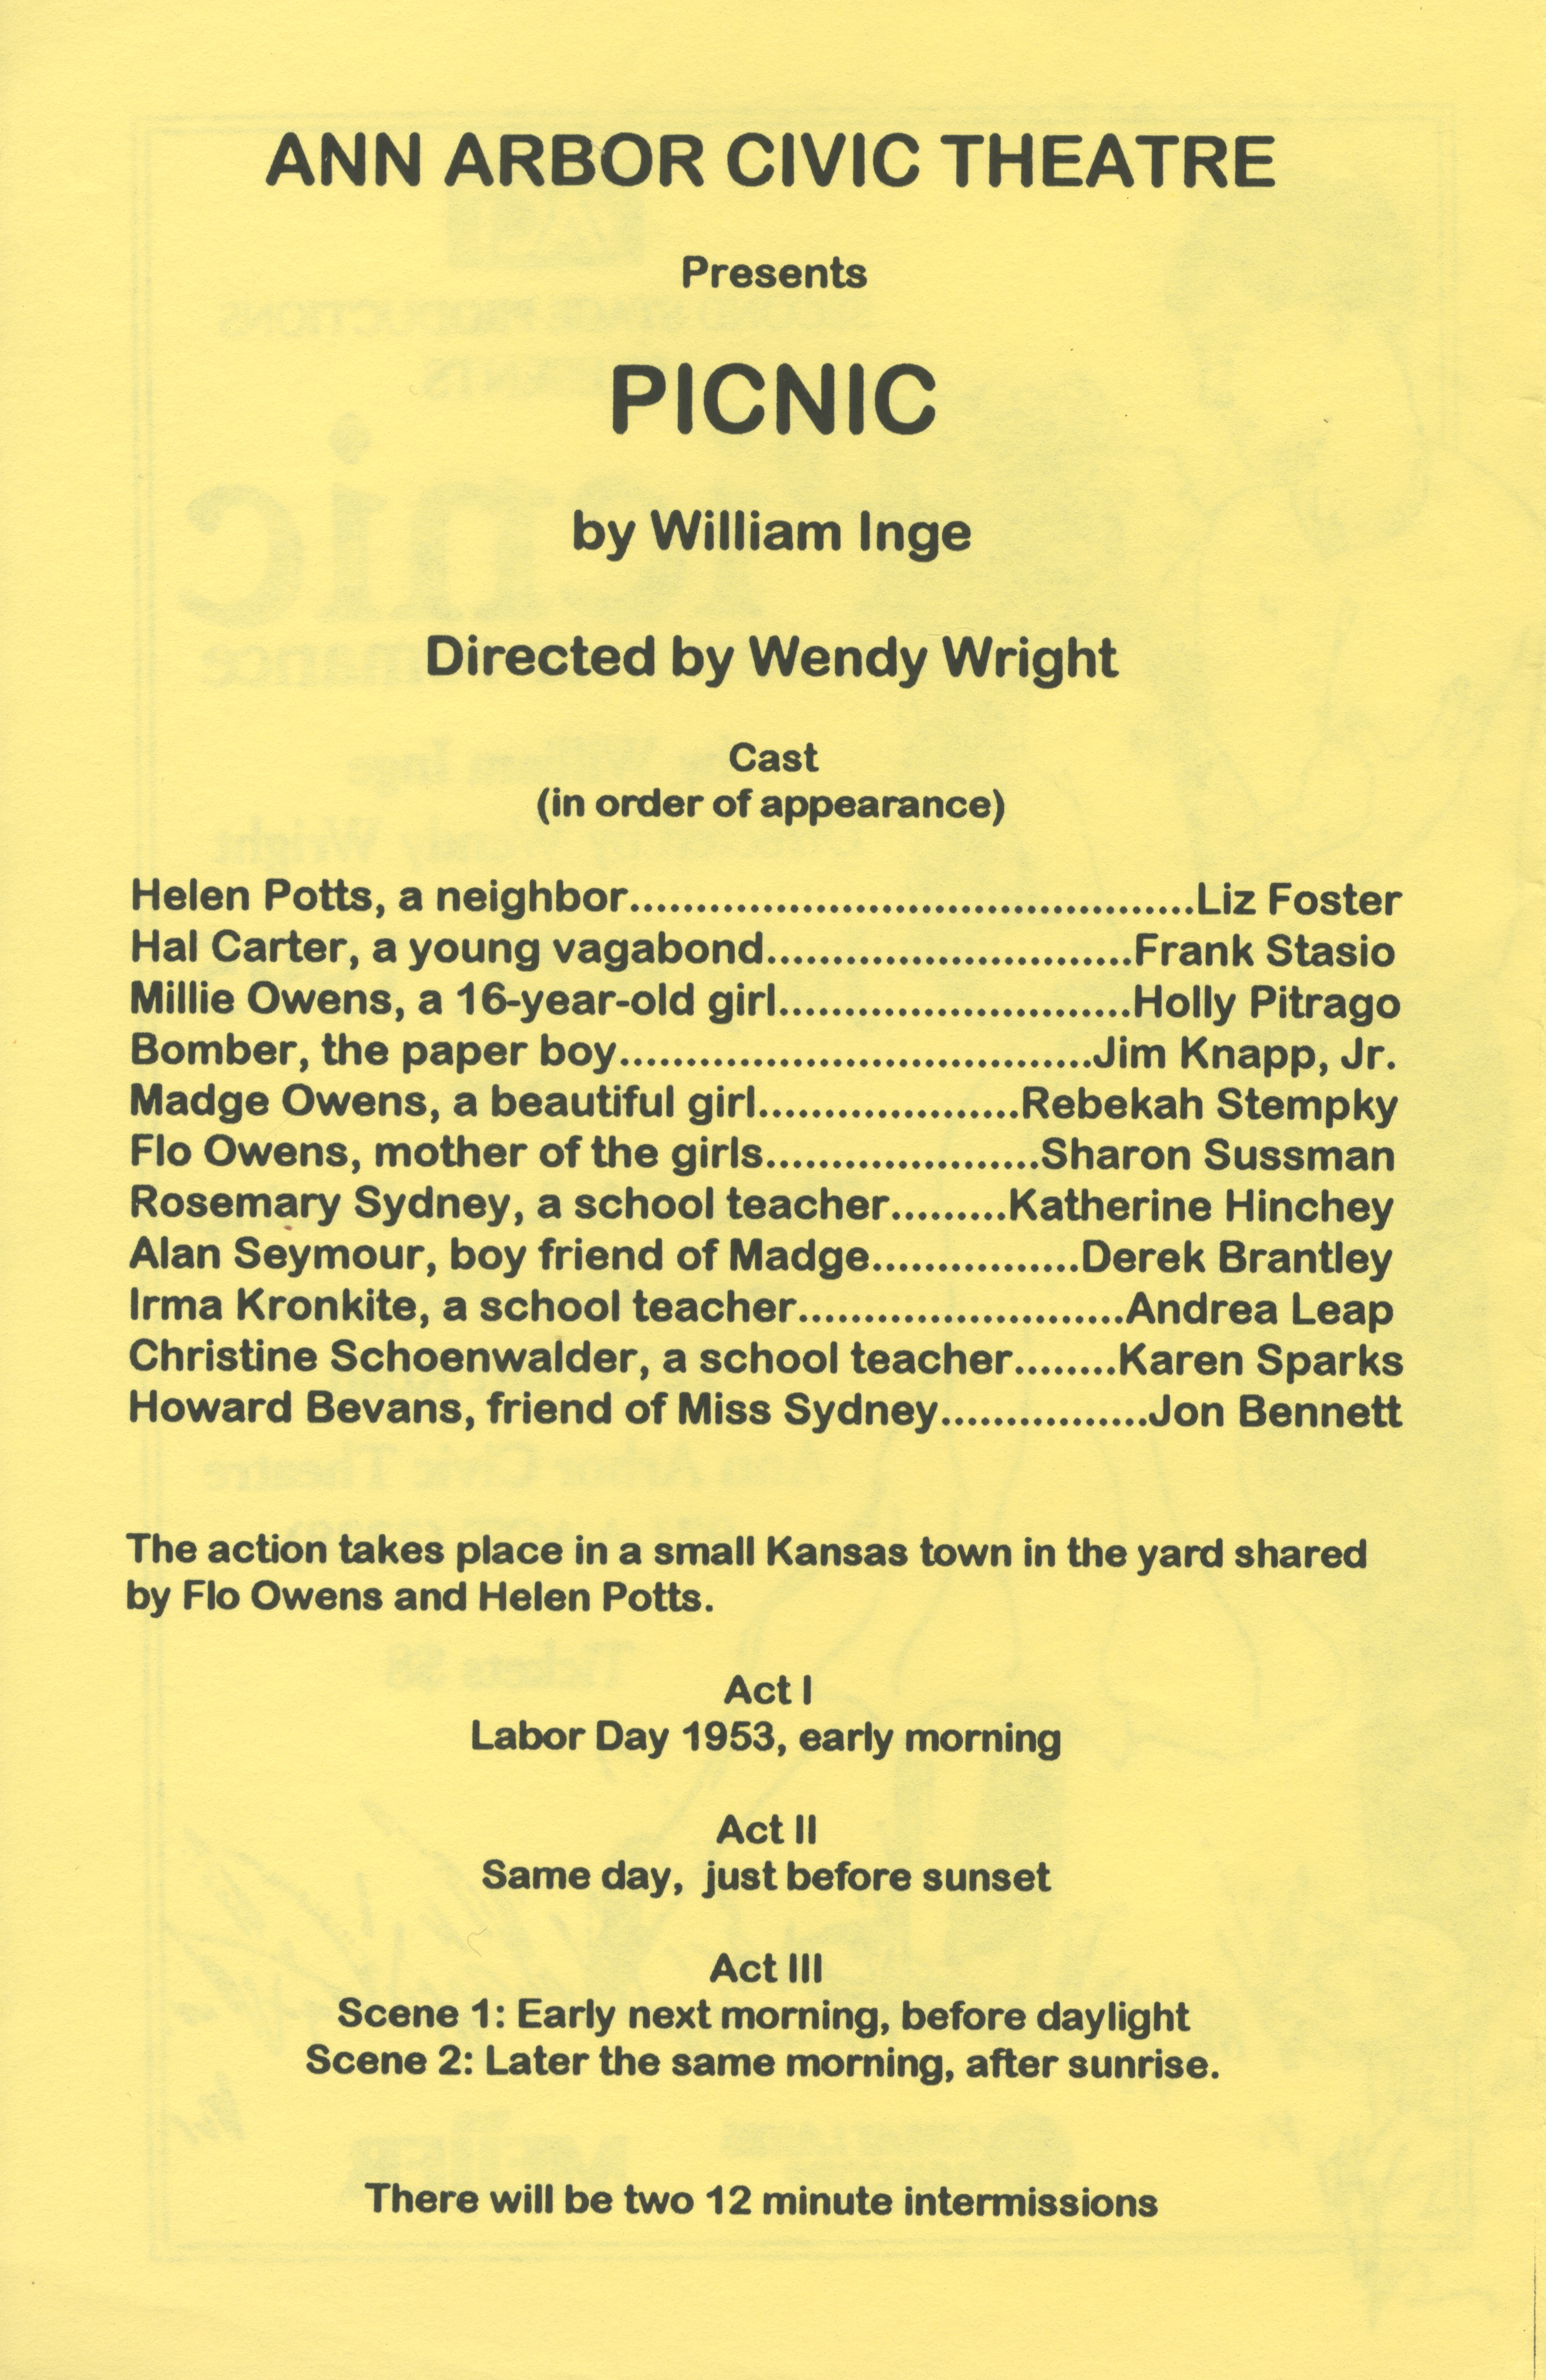 Ann Arbor Civic Theatre Program: Picnic, July 06, 1995 image